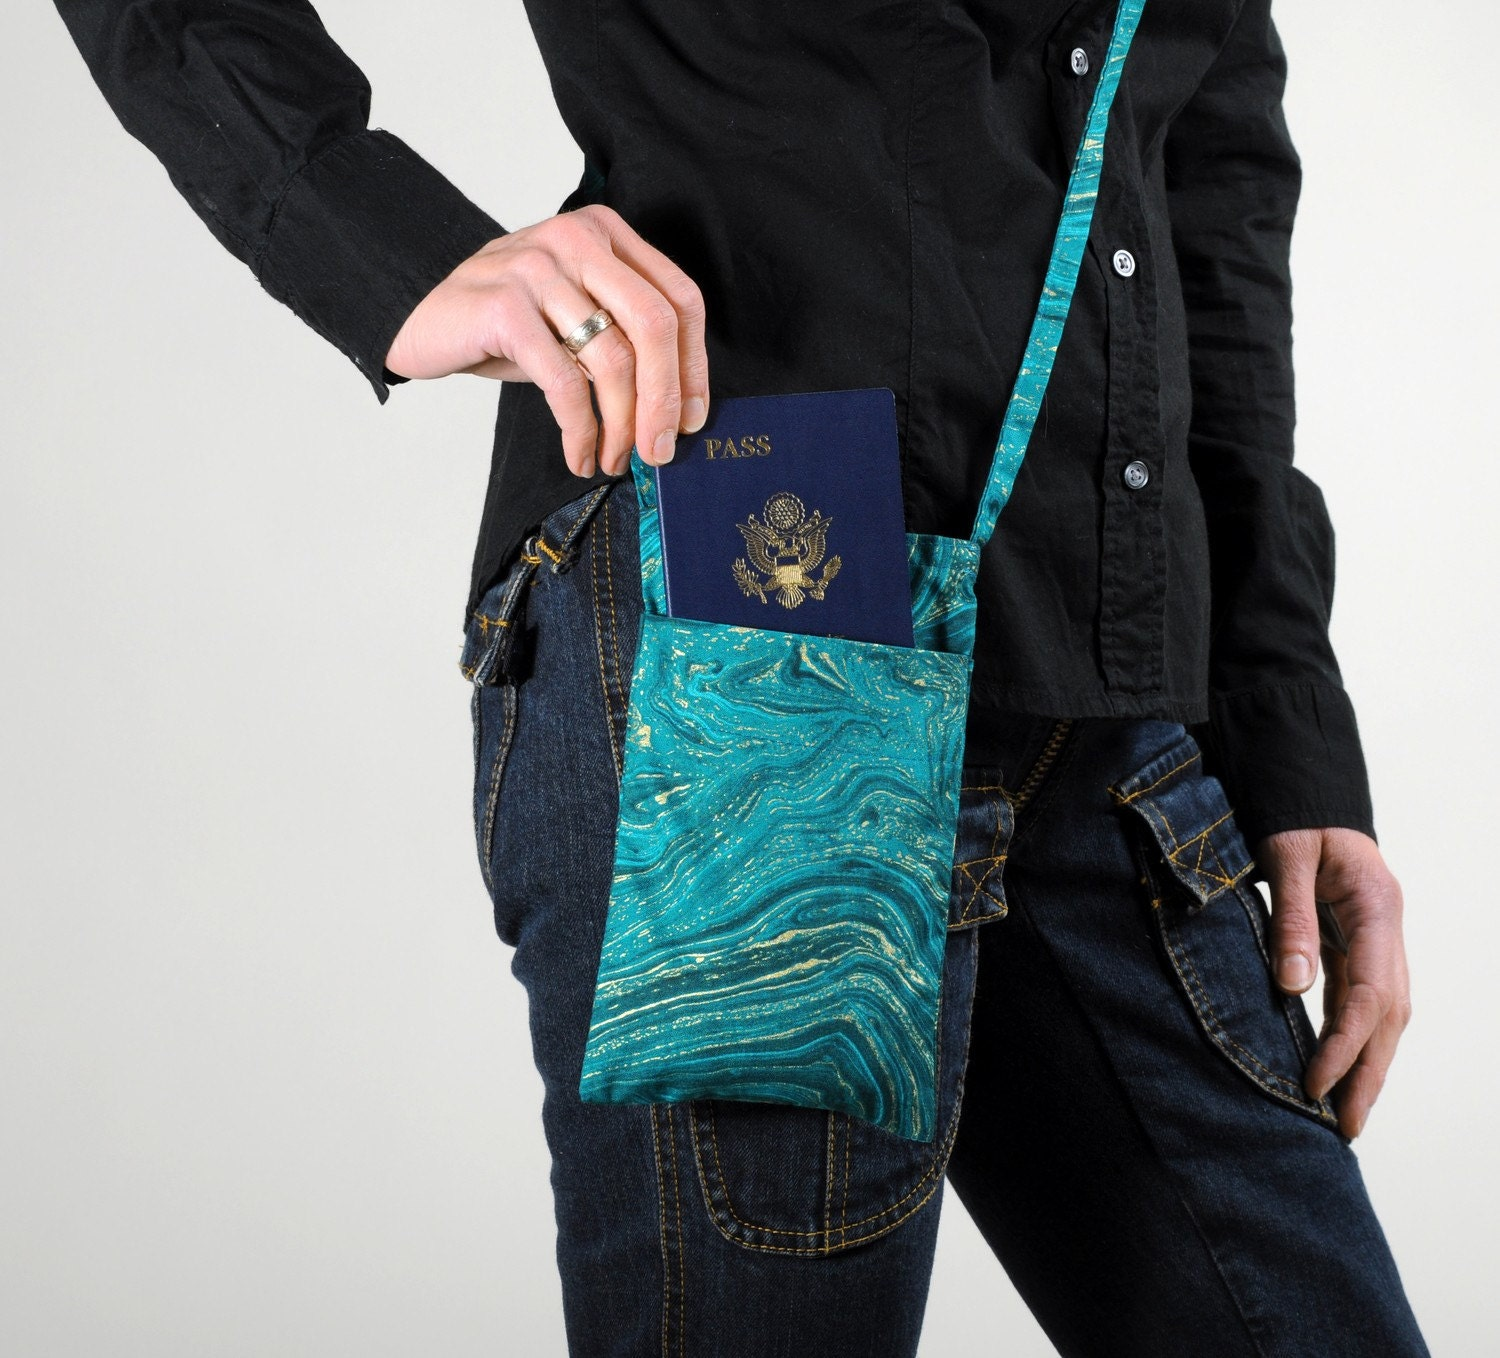 Shoulder Bag-Passport Bag-Marbled Blue Print